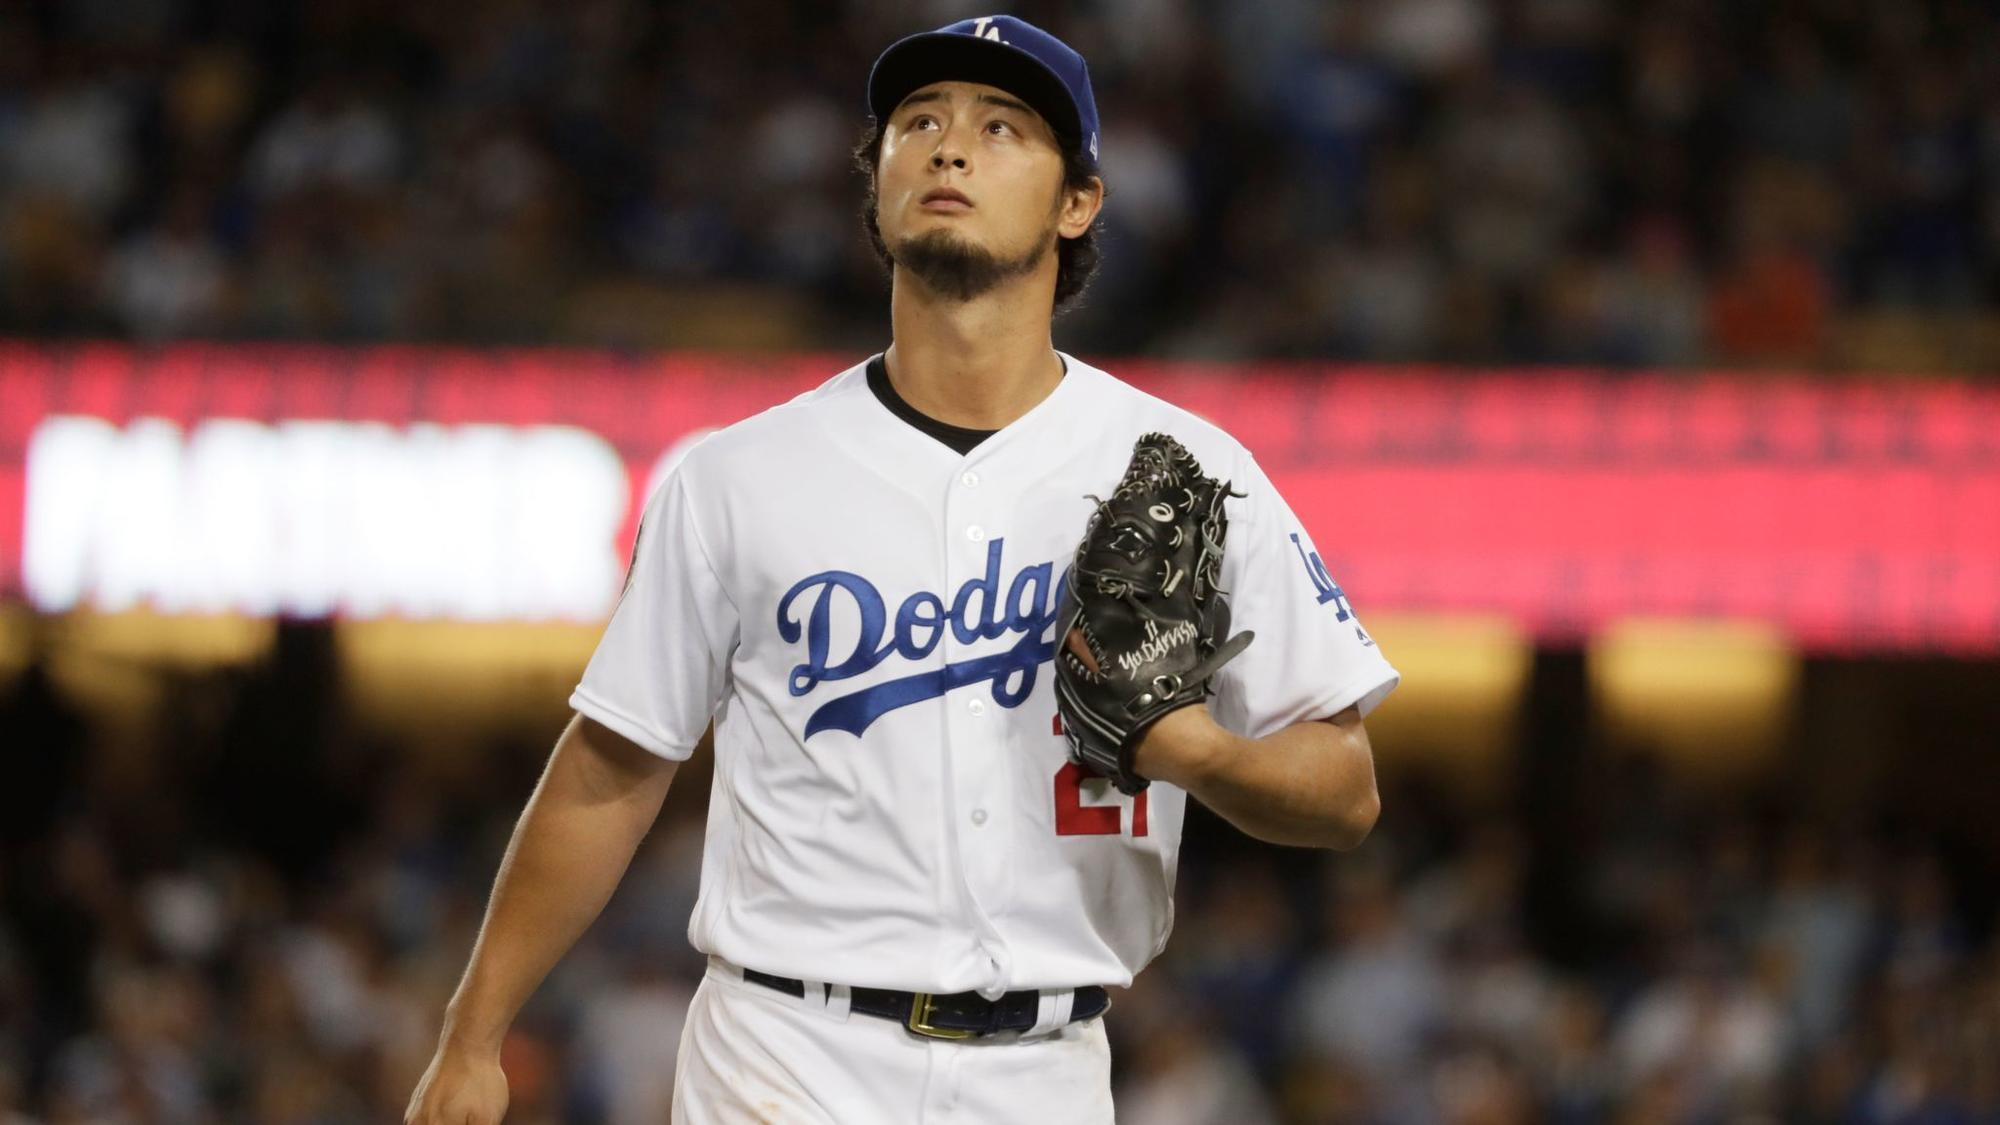 La-sp-dodgers-free-agency-darvish-20180117